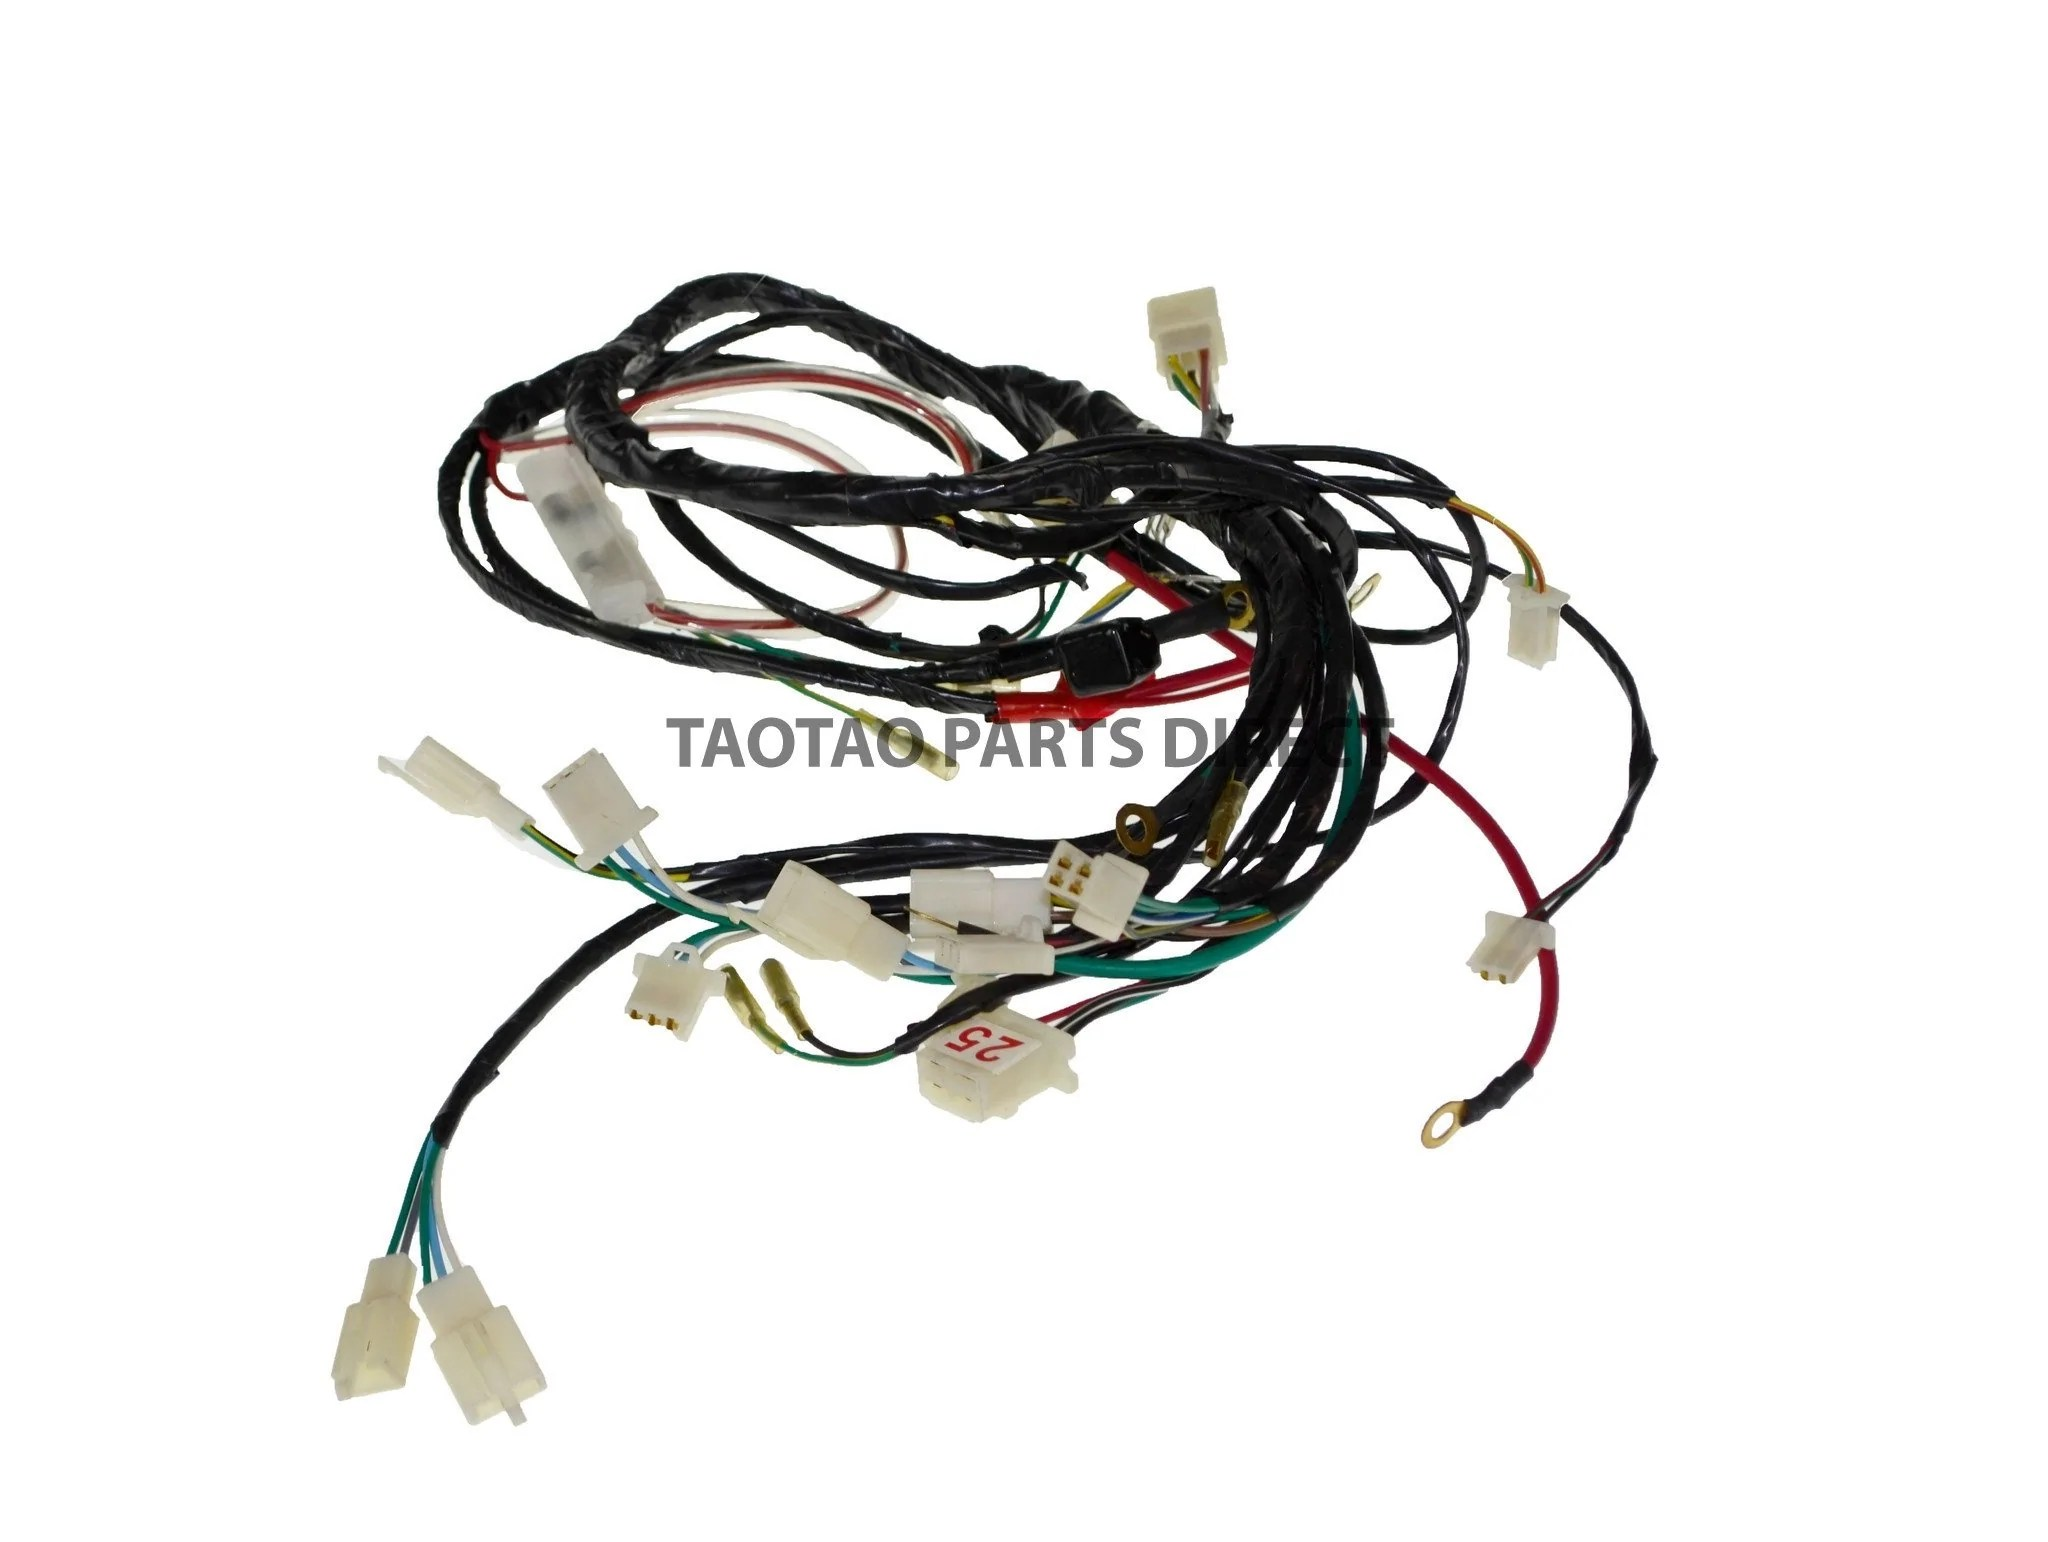 hight resolution of atv parts ata250d wire harness 25